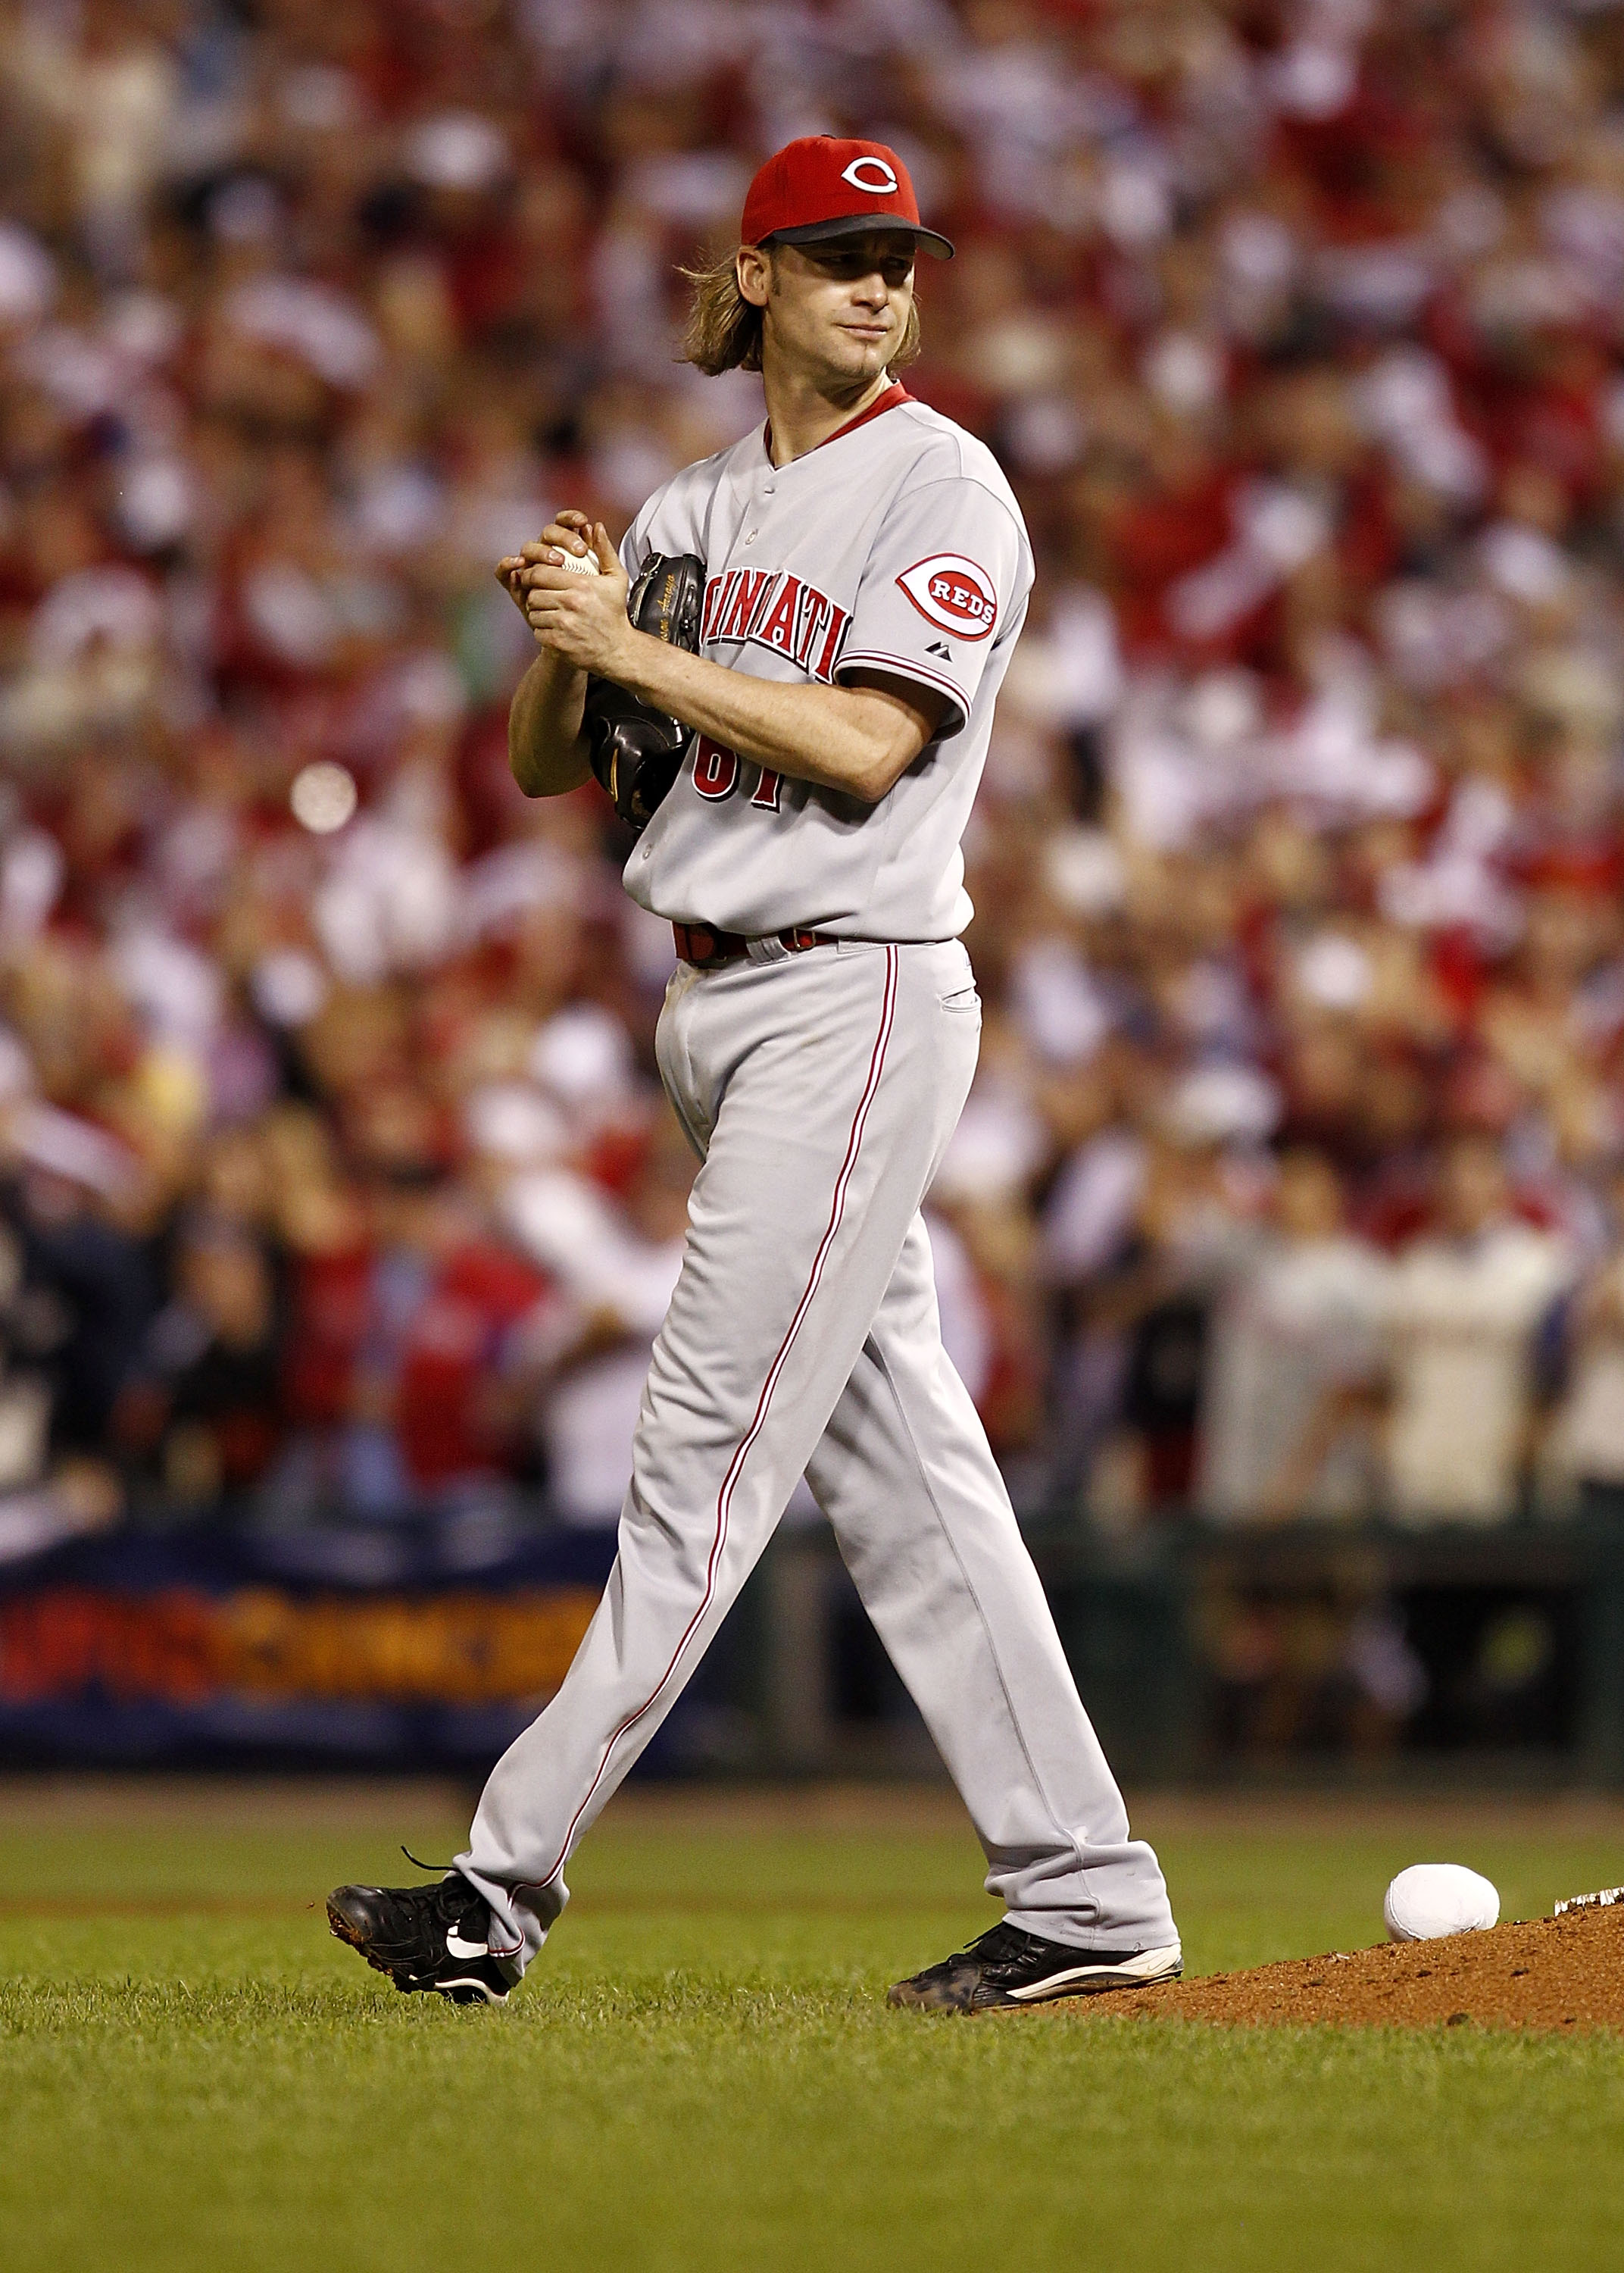 PHILADELPHIA - OCTOBER 08:  Bronson Arroyo #61 of the Cincinnati Reds walks to the mound in Game 2 of the NLDS against the Philadelphia Phillies at Citizens Bank Park on October 8, 2010 in Philadelphia, Pennsylvania.  (Photo by Jeff Zelevansky/Getty Image